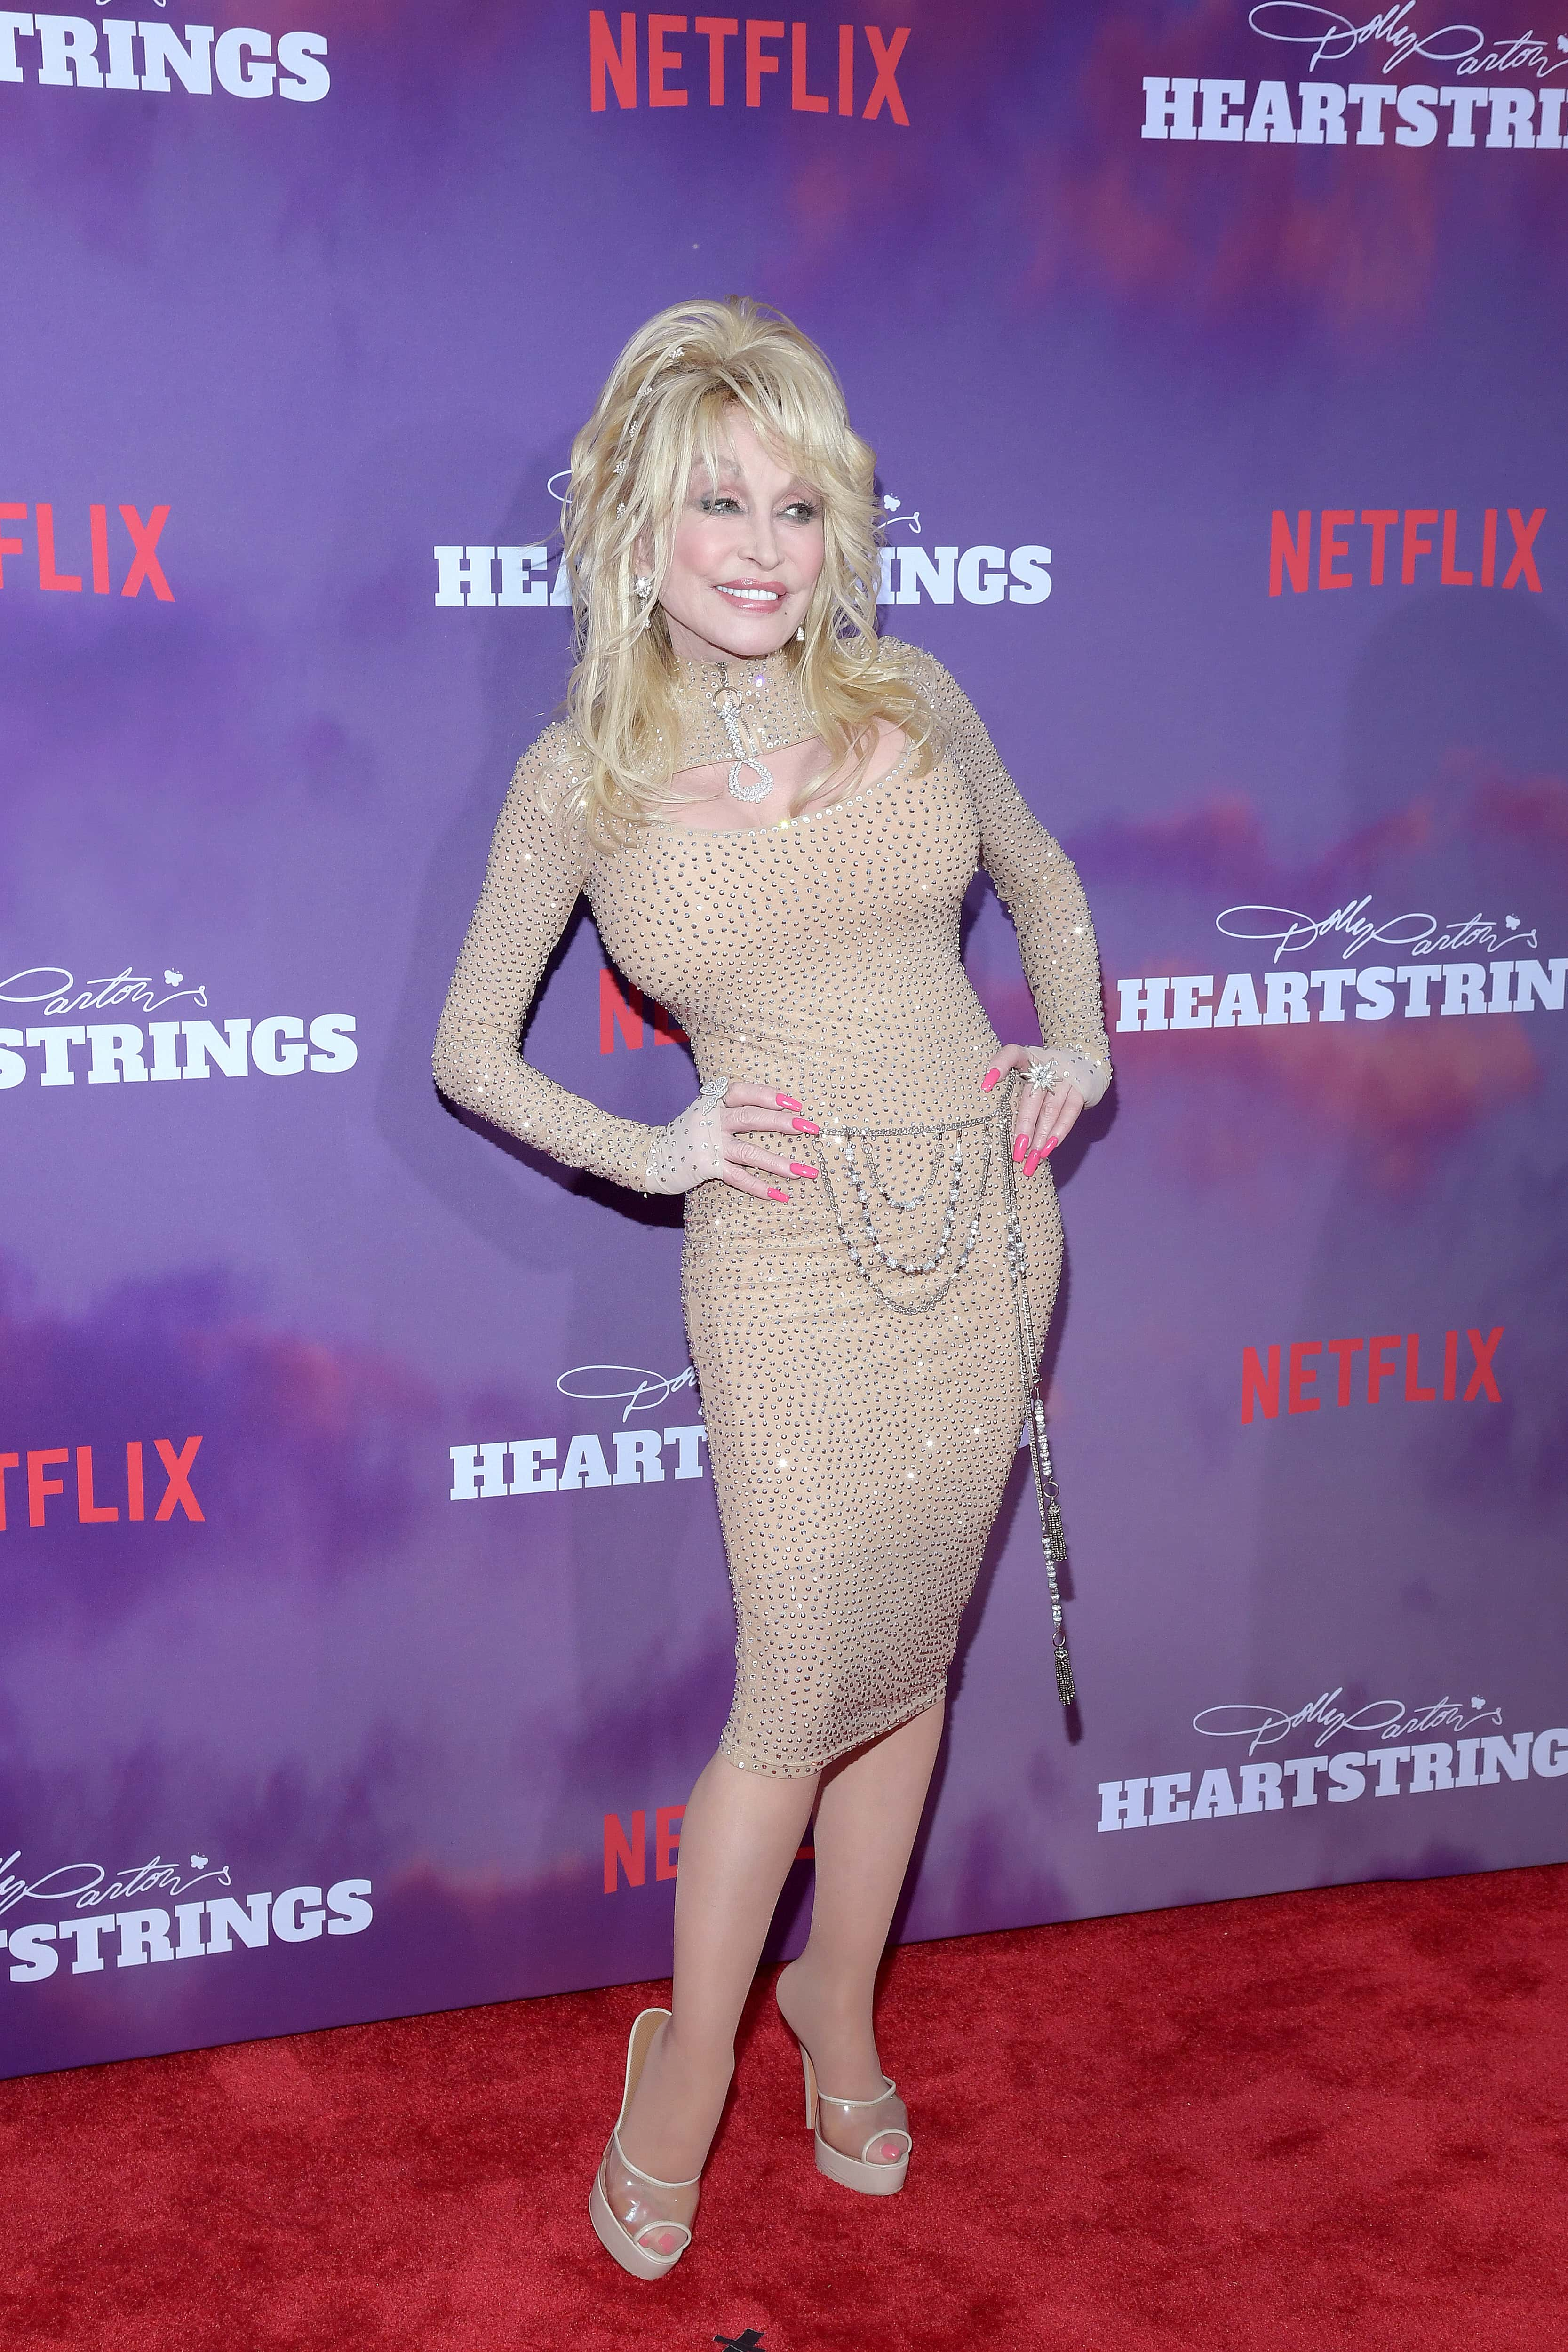 Did Dolly Parton Have A Boob Job : dolly, parton, Dolly, Parton, Breast, Implants?, Here's, Singer, Virginia, Twins, 'killing', After, Surgery, MEAWW